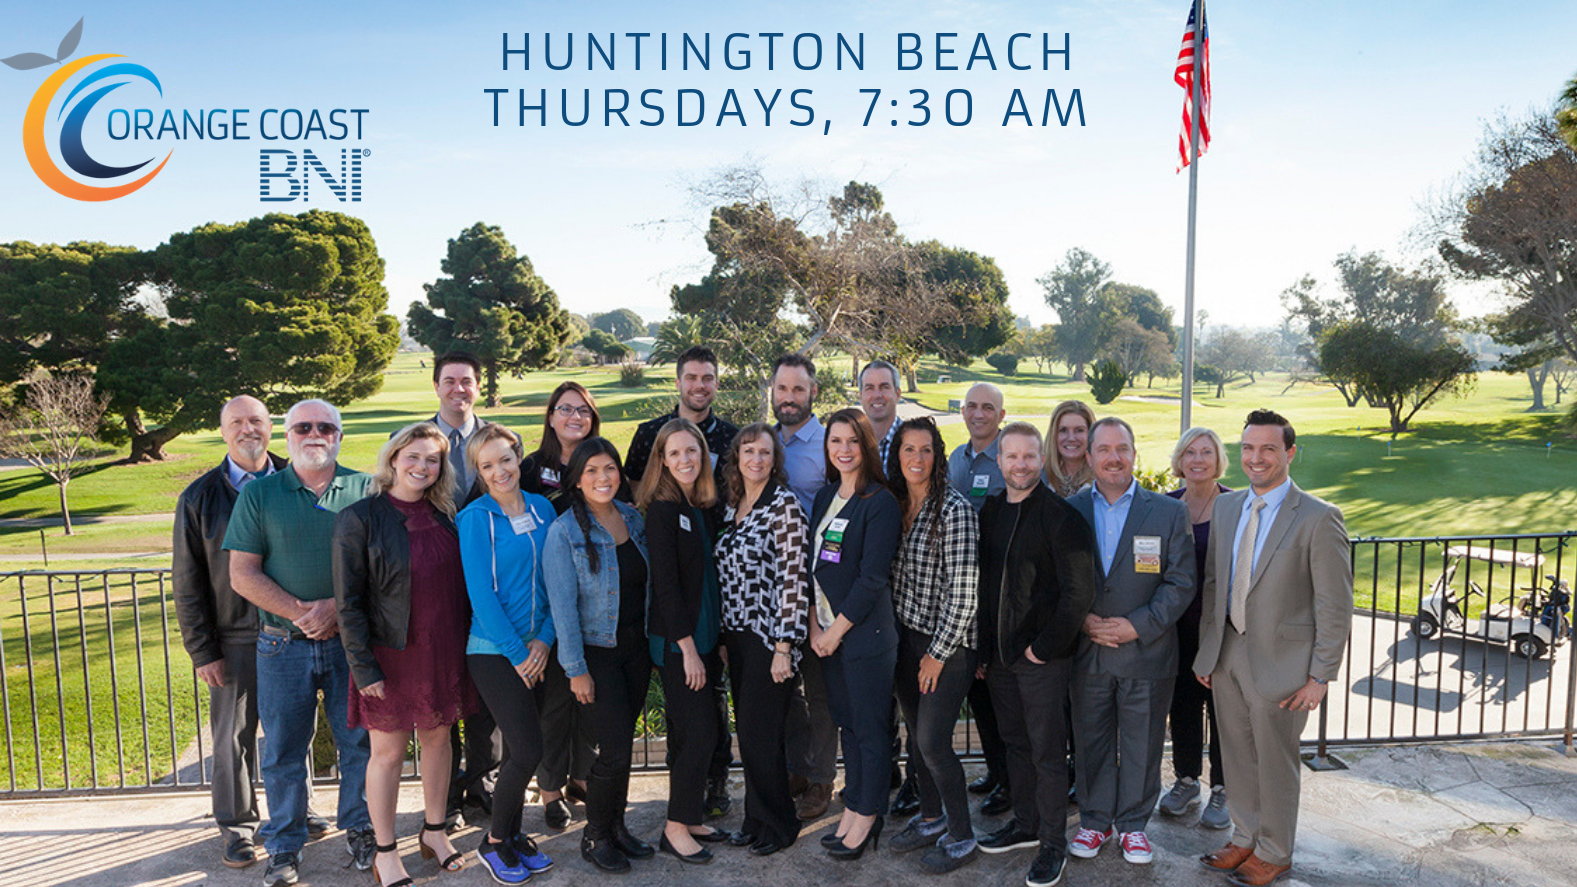 Orange Coast Business Networking Meetup in Huntington Beach